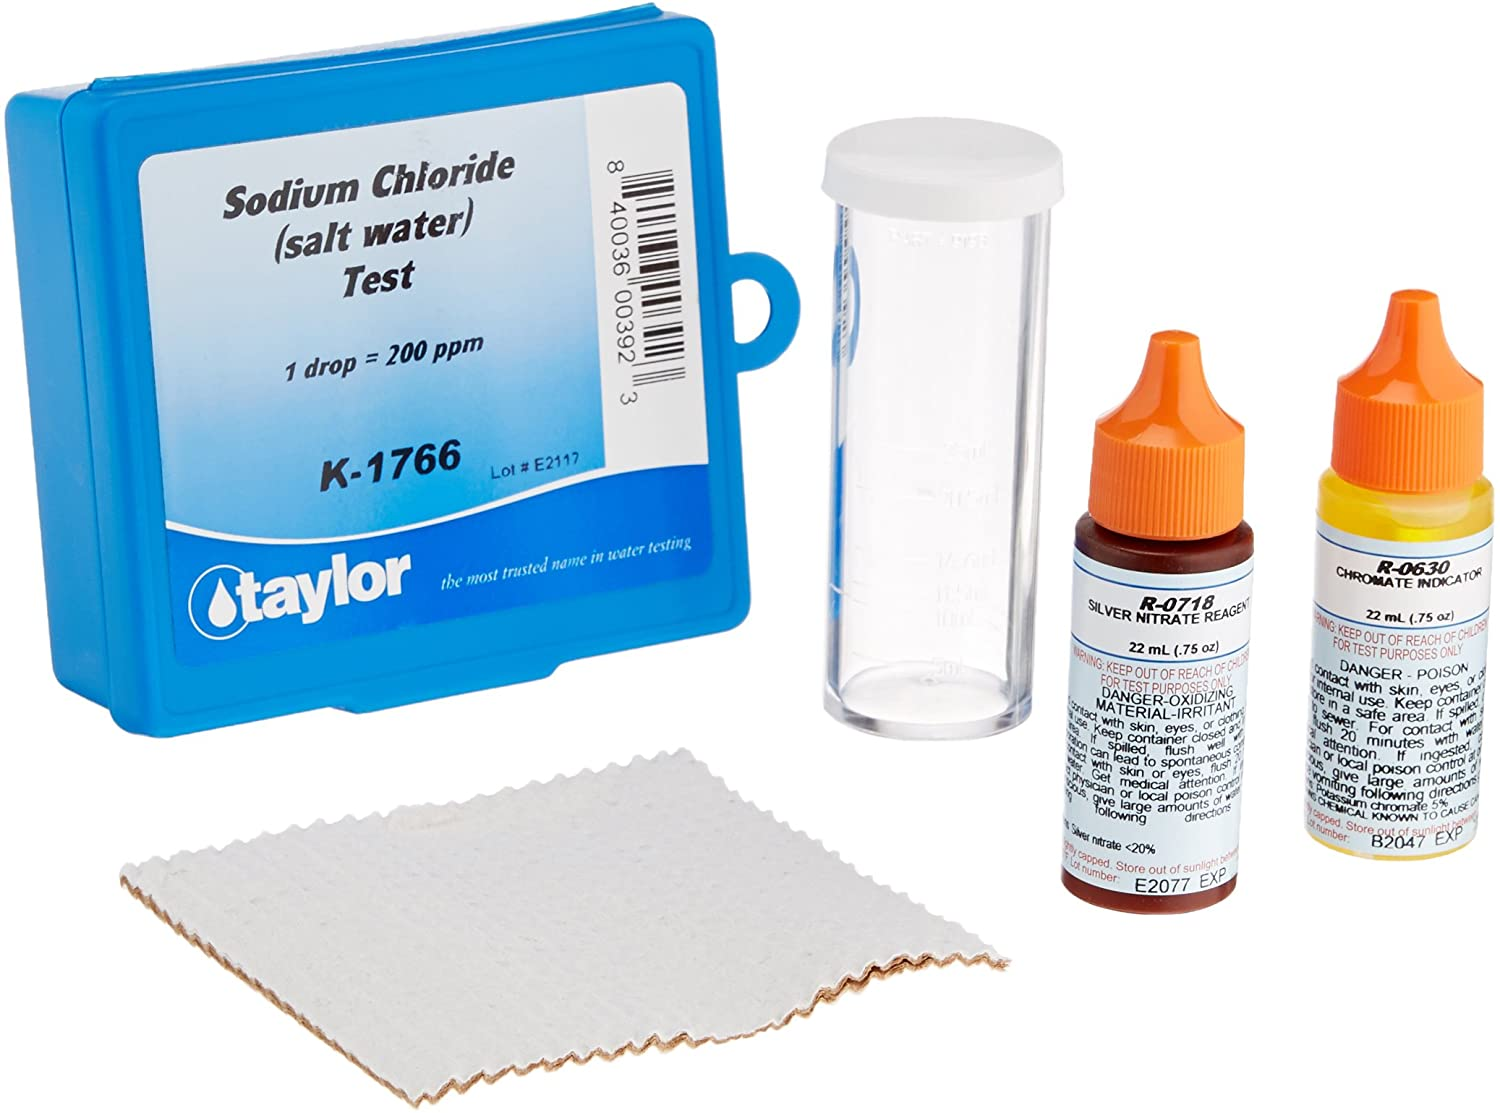 a salt water test kit with a blue box, two dye bottles and a plastic tube by Taylor Technologies